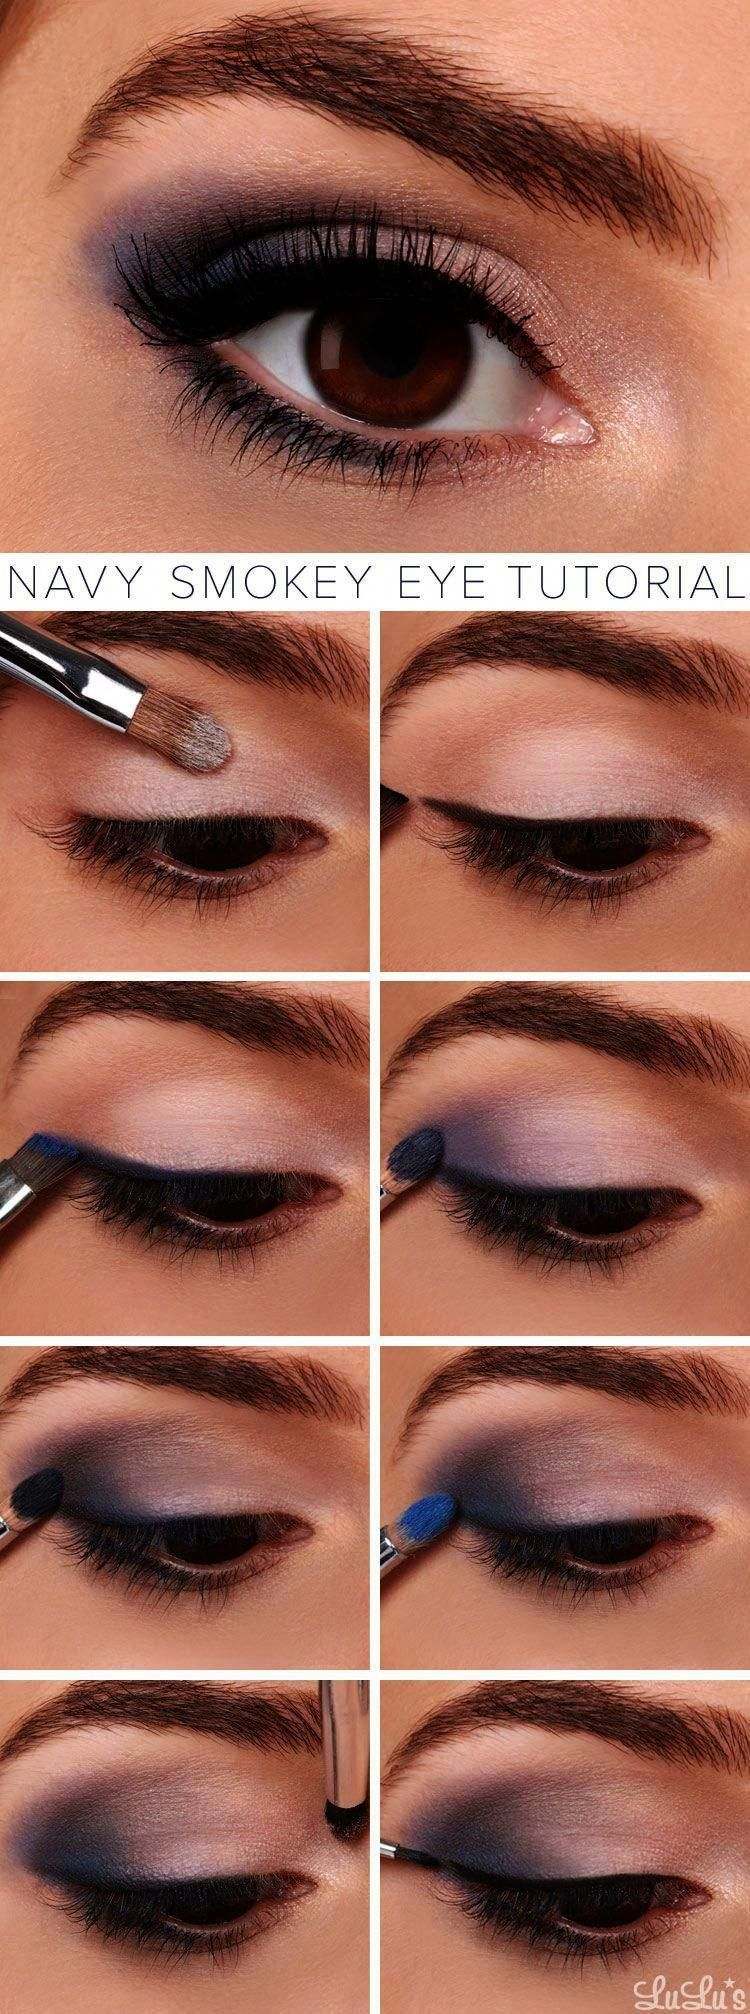 how to do smokey eye makeup for hazel eyes #exceptional